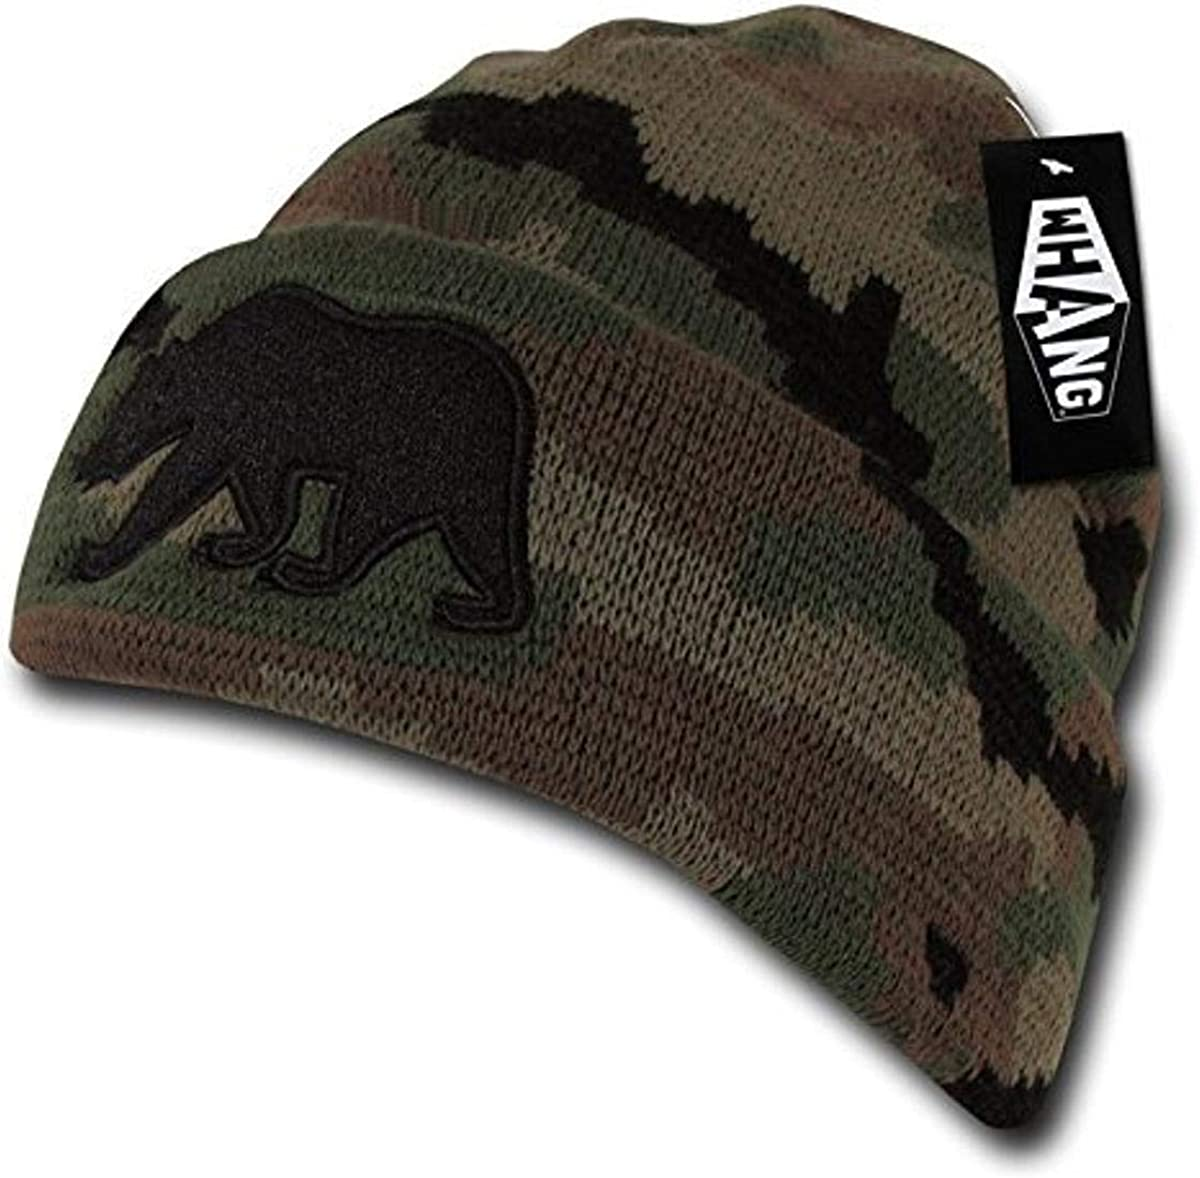 WHANG Pom Popular brand in the world Cali Cheap mail order sales Bear Beanies